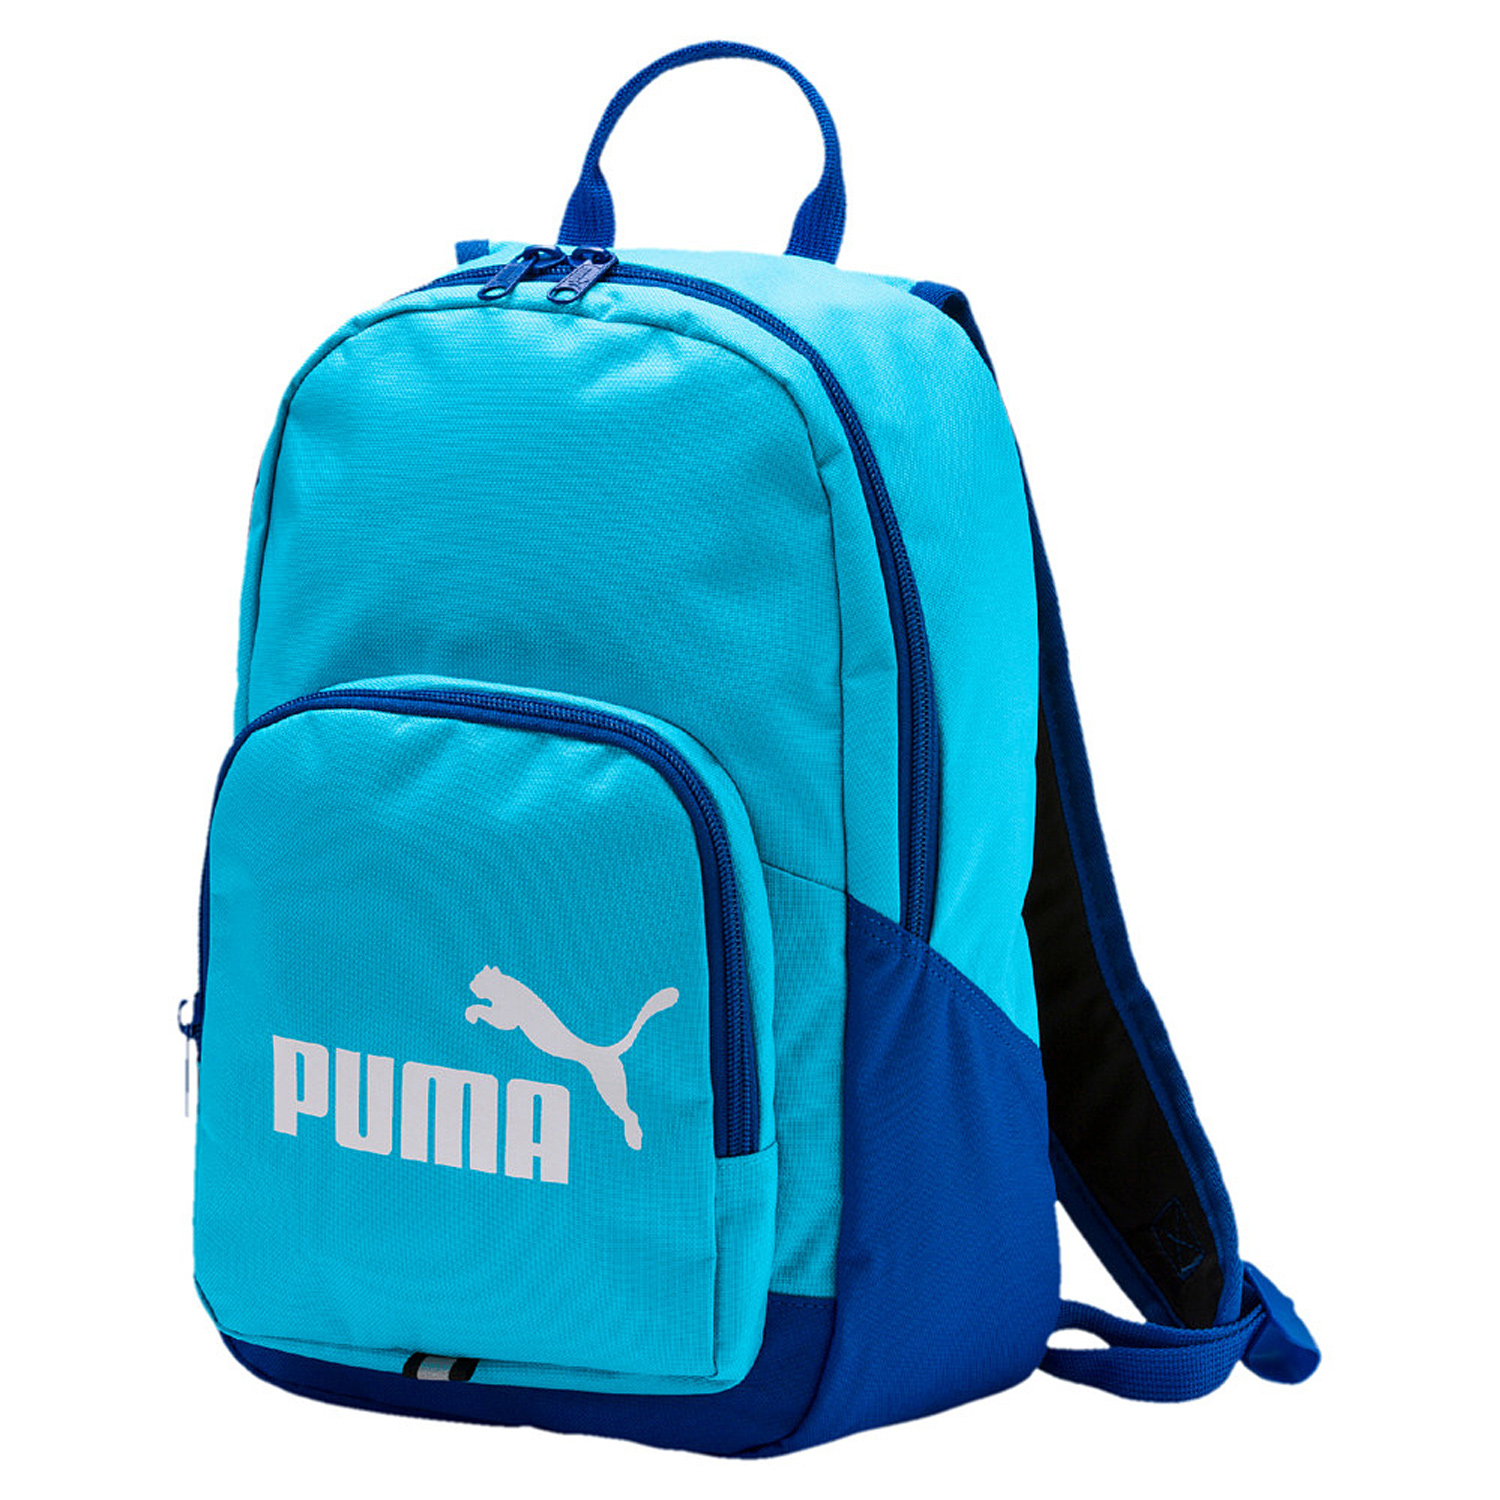 Puma Phase Small Backpack Kinder Rucksack Tasche - 74104 ...